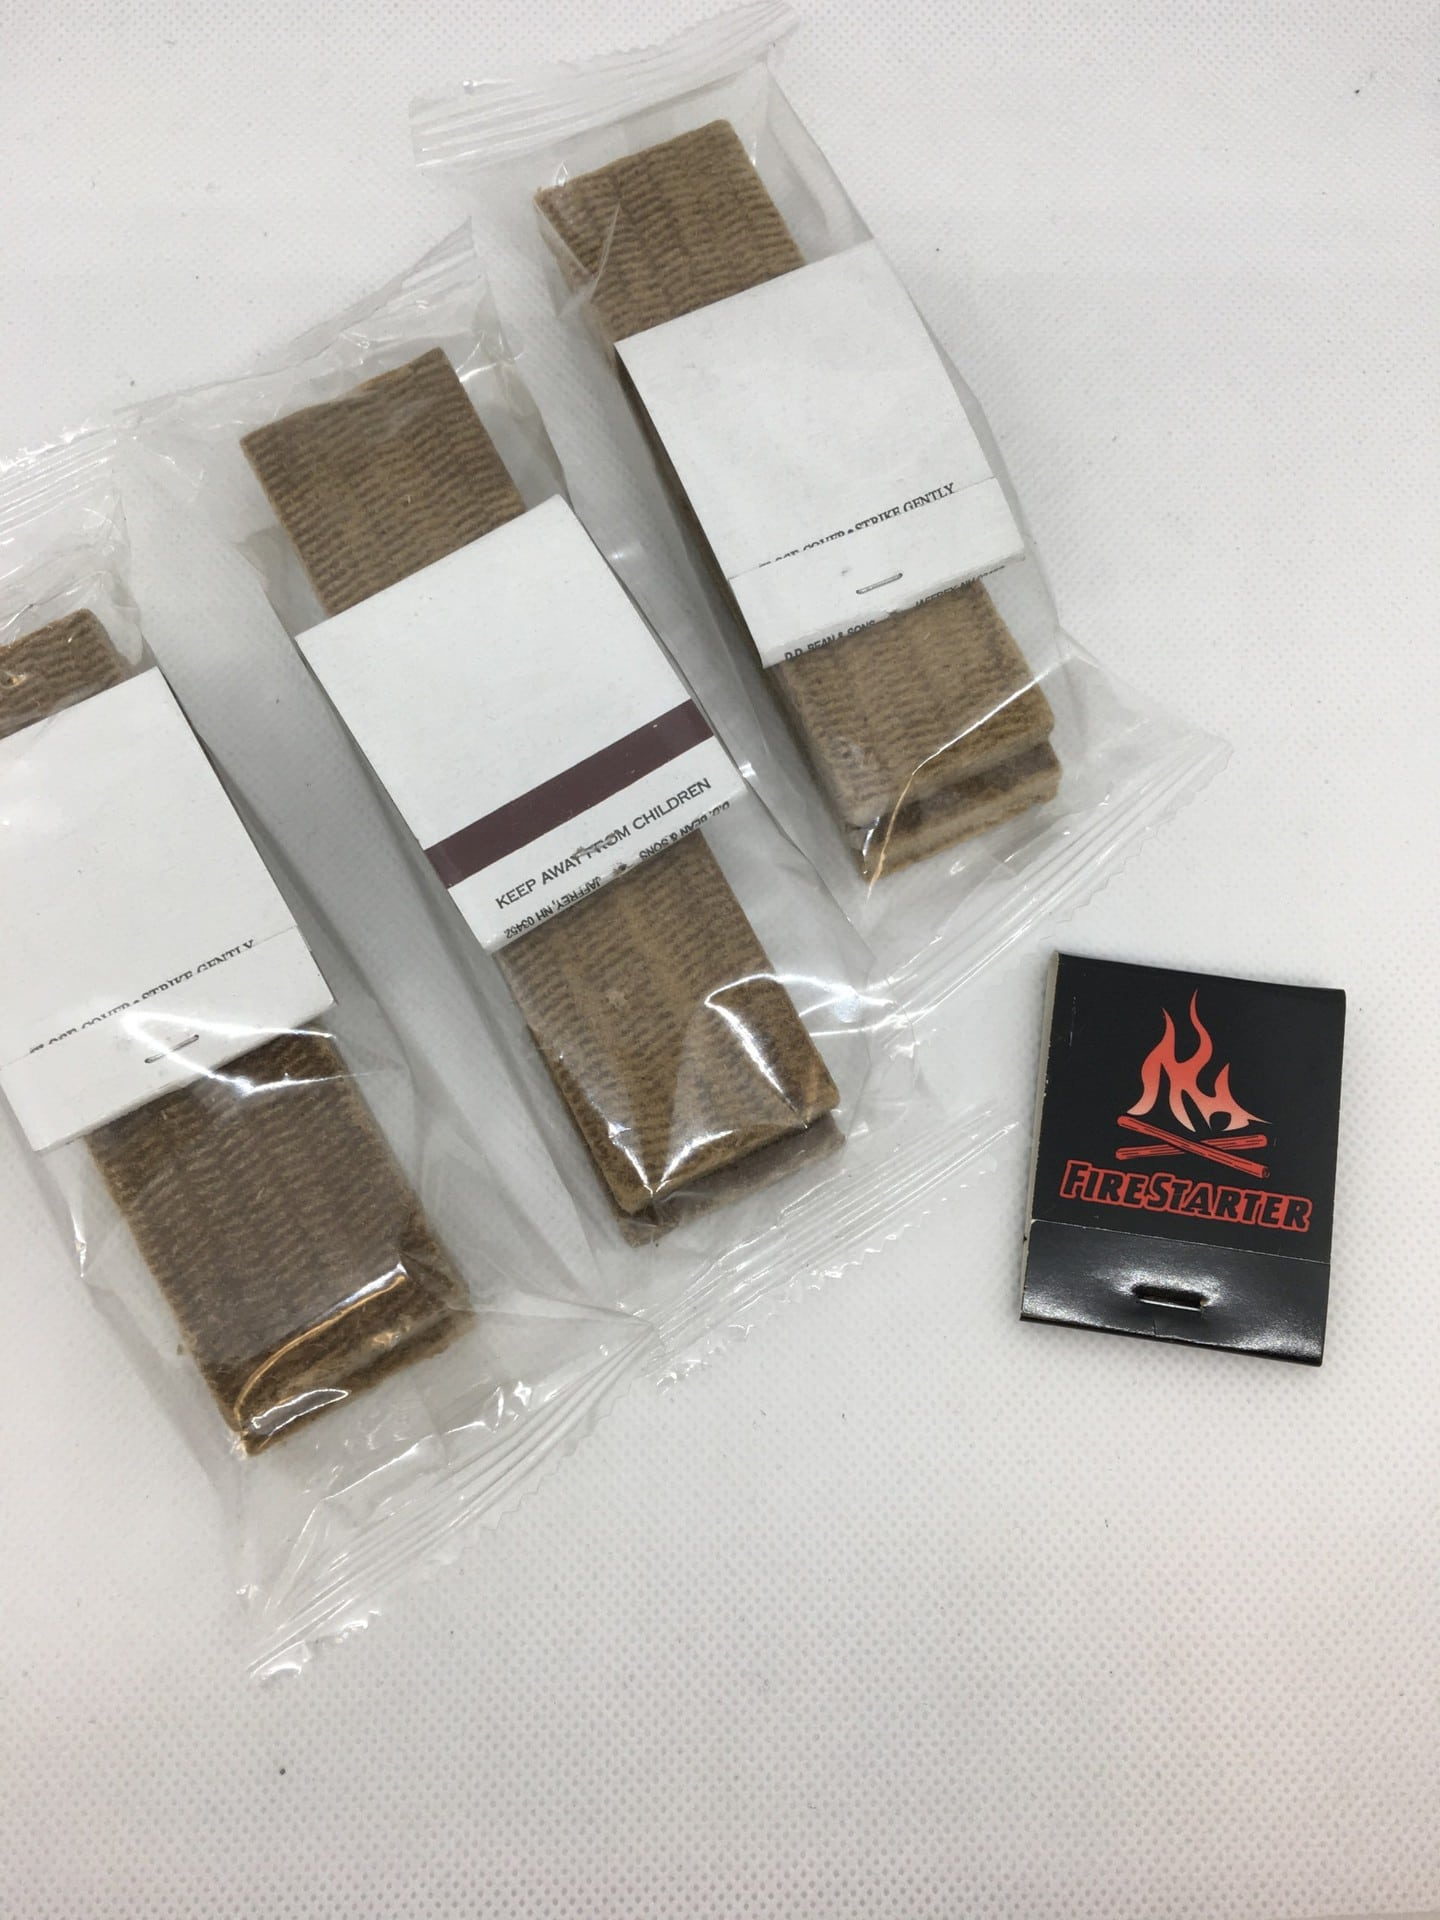 Firestarters with matchbook